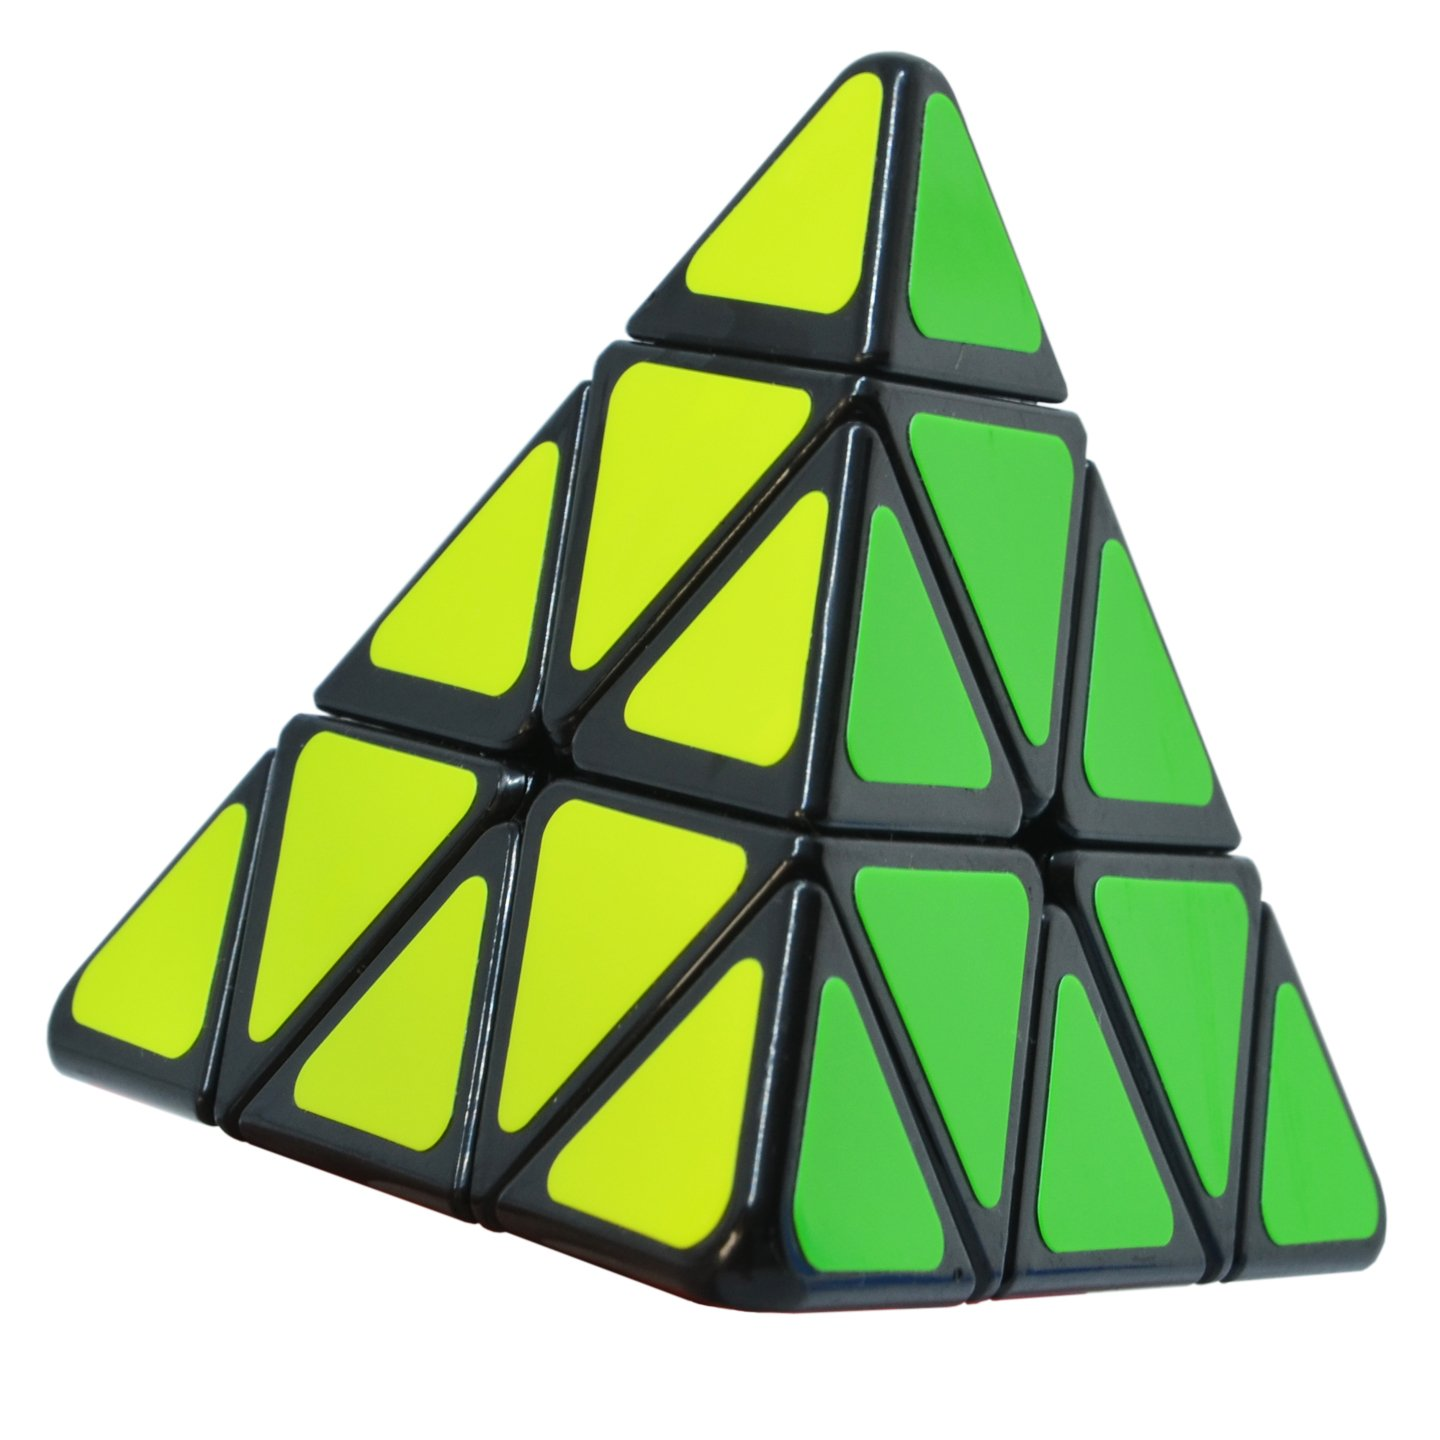 Maomaoyu Pyraminx Speed Cube 2x2 2x2x2 Pyramid Triangle Smooth Magic Cube 3D Puzzle Twist Education Toys for Adults & Kids (Black)